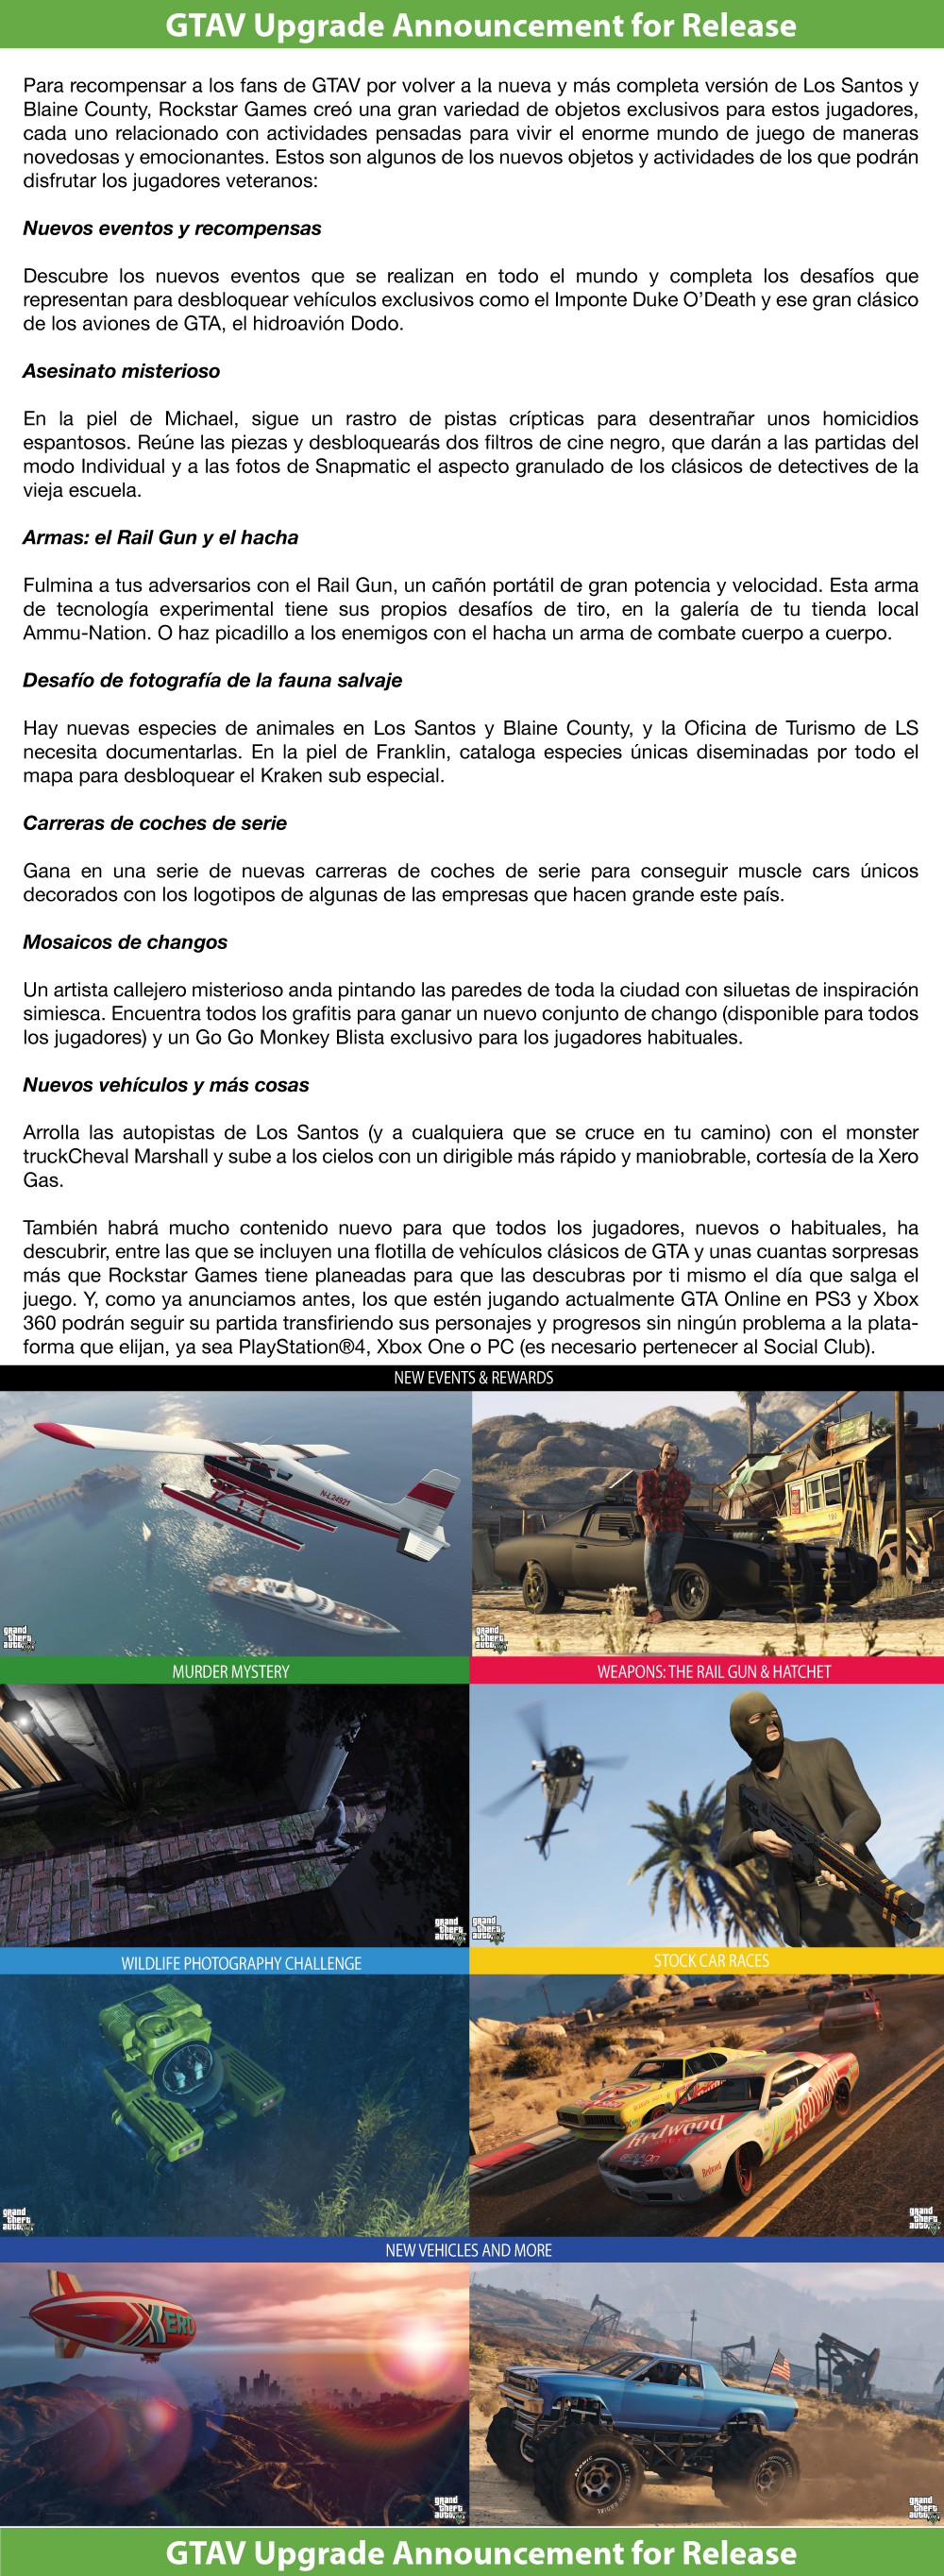 GTAV Upgrade Announcement for Release